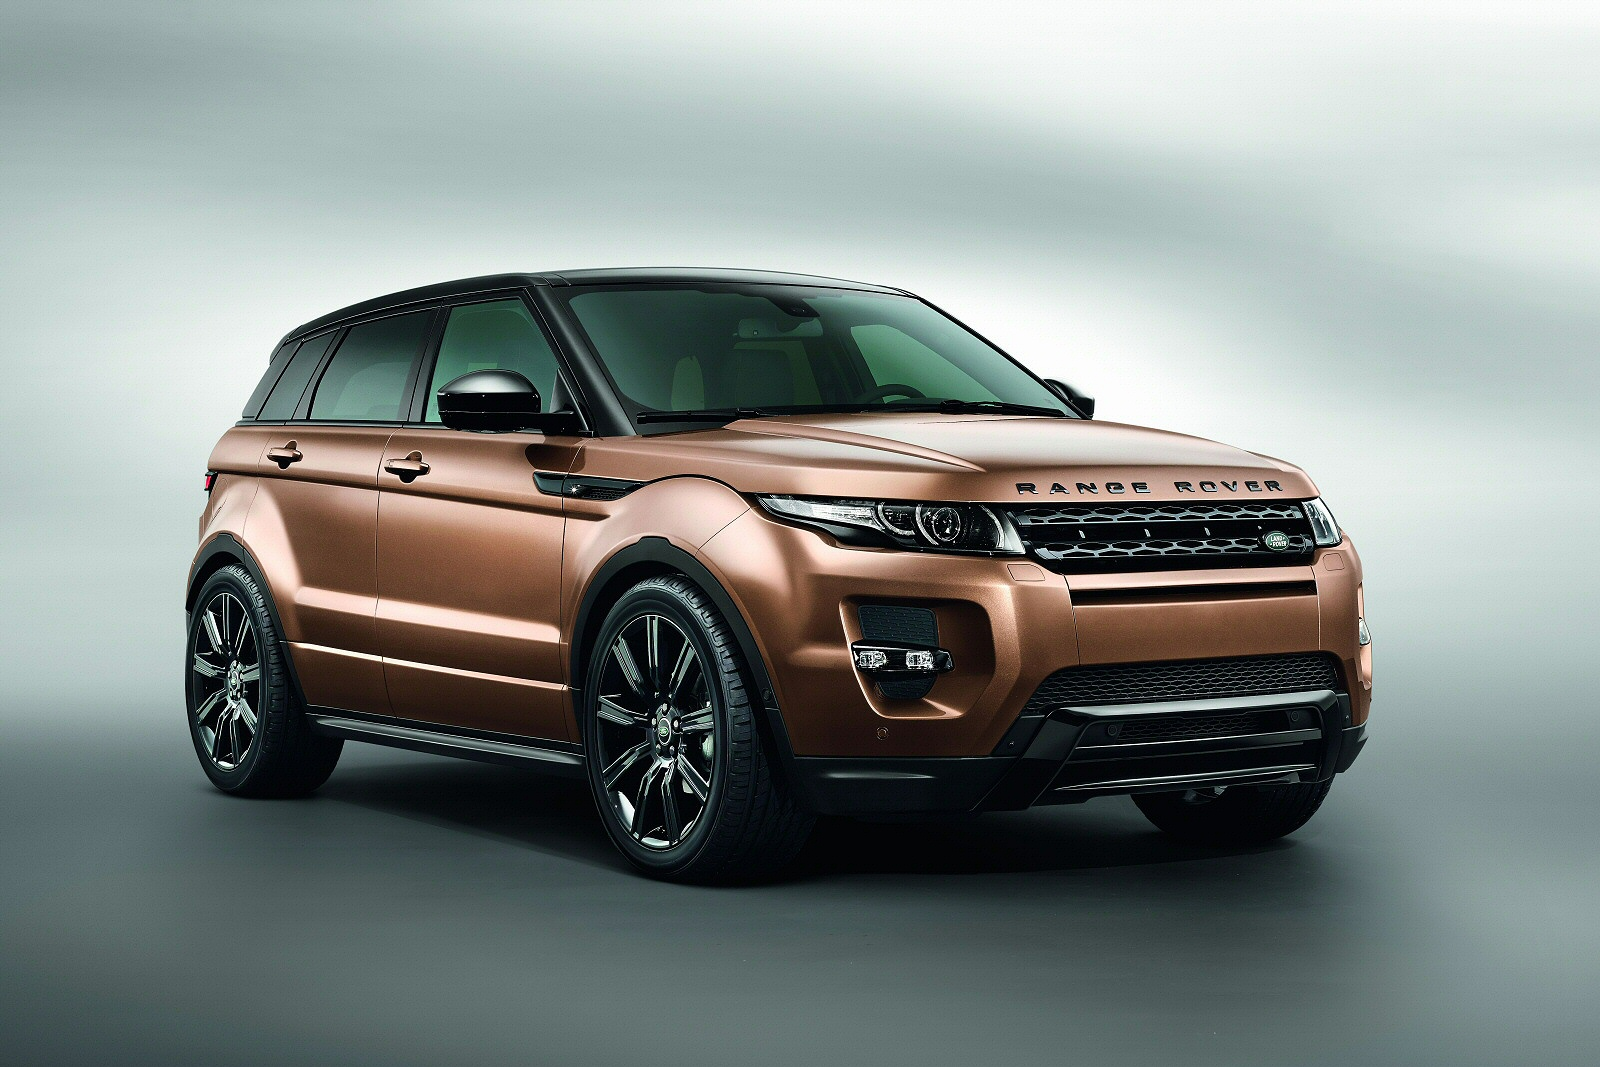 New Land Rover Range Rover Evoque 2 0 Td4 Hse Dynamic 5dr